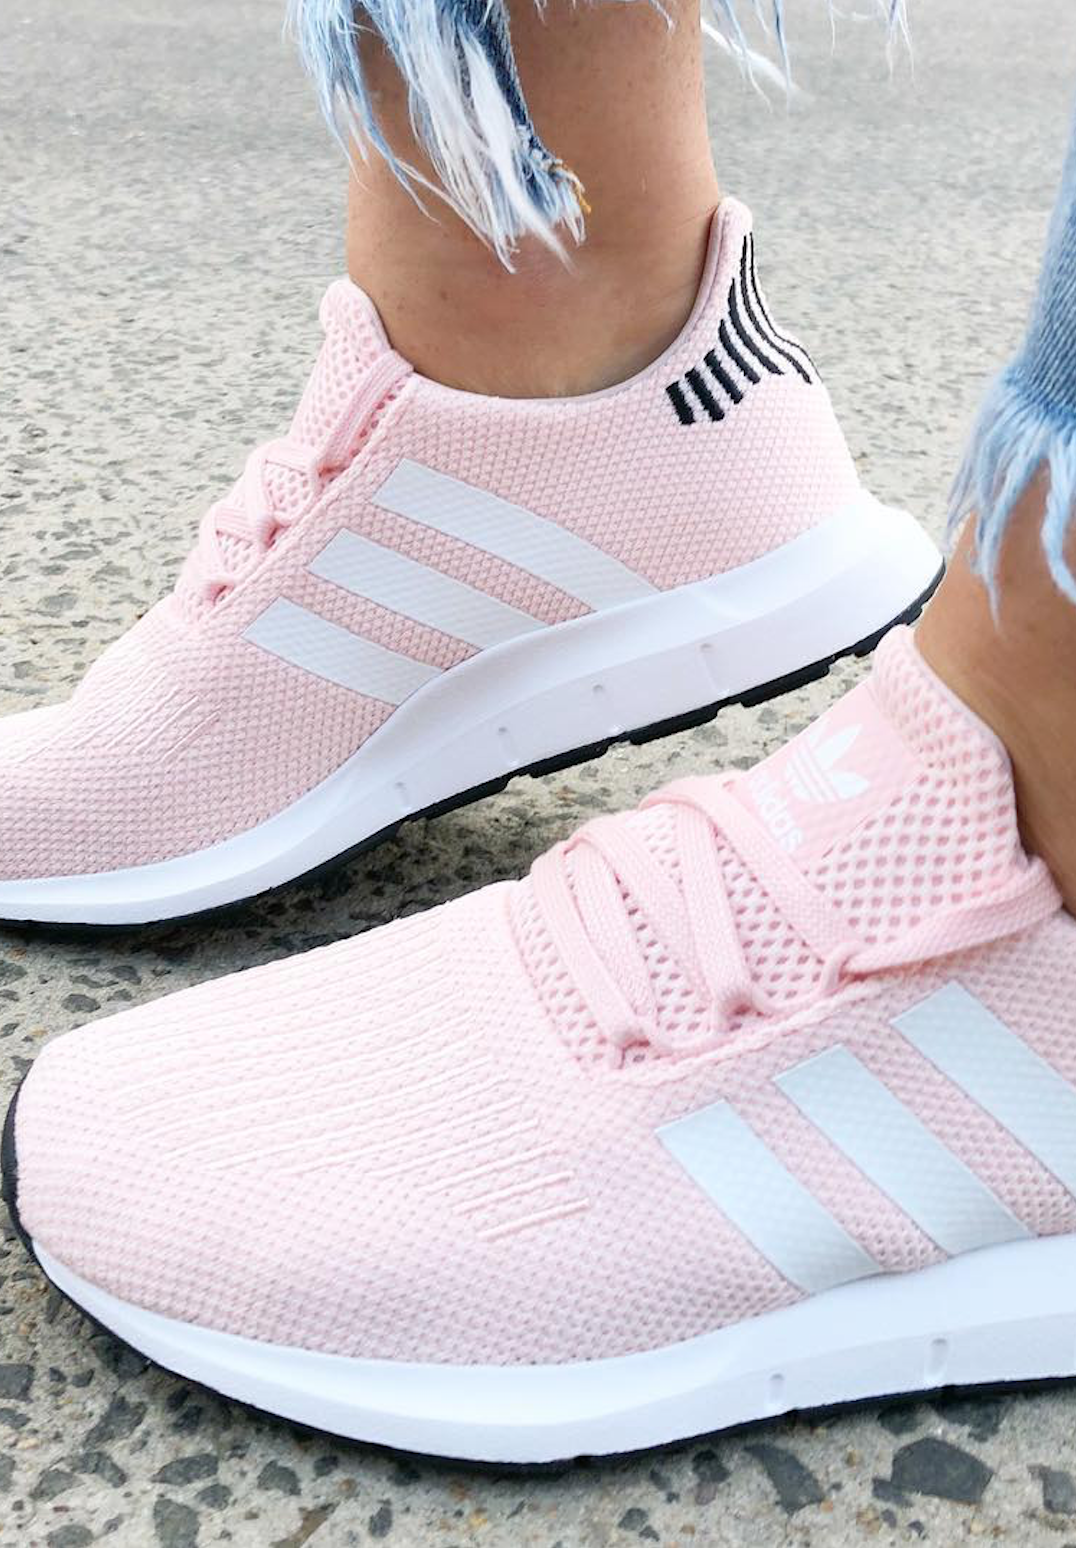 2355fd9806a adidas Swift Run Sneakers in Icy Pink. Seriously stylish shoes 2018.